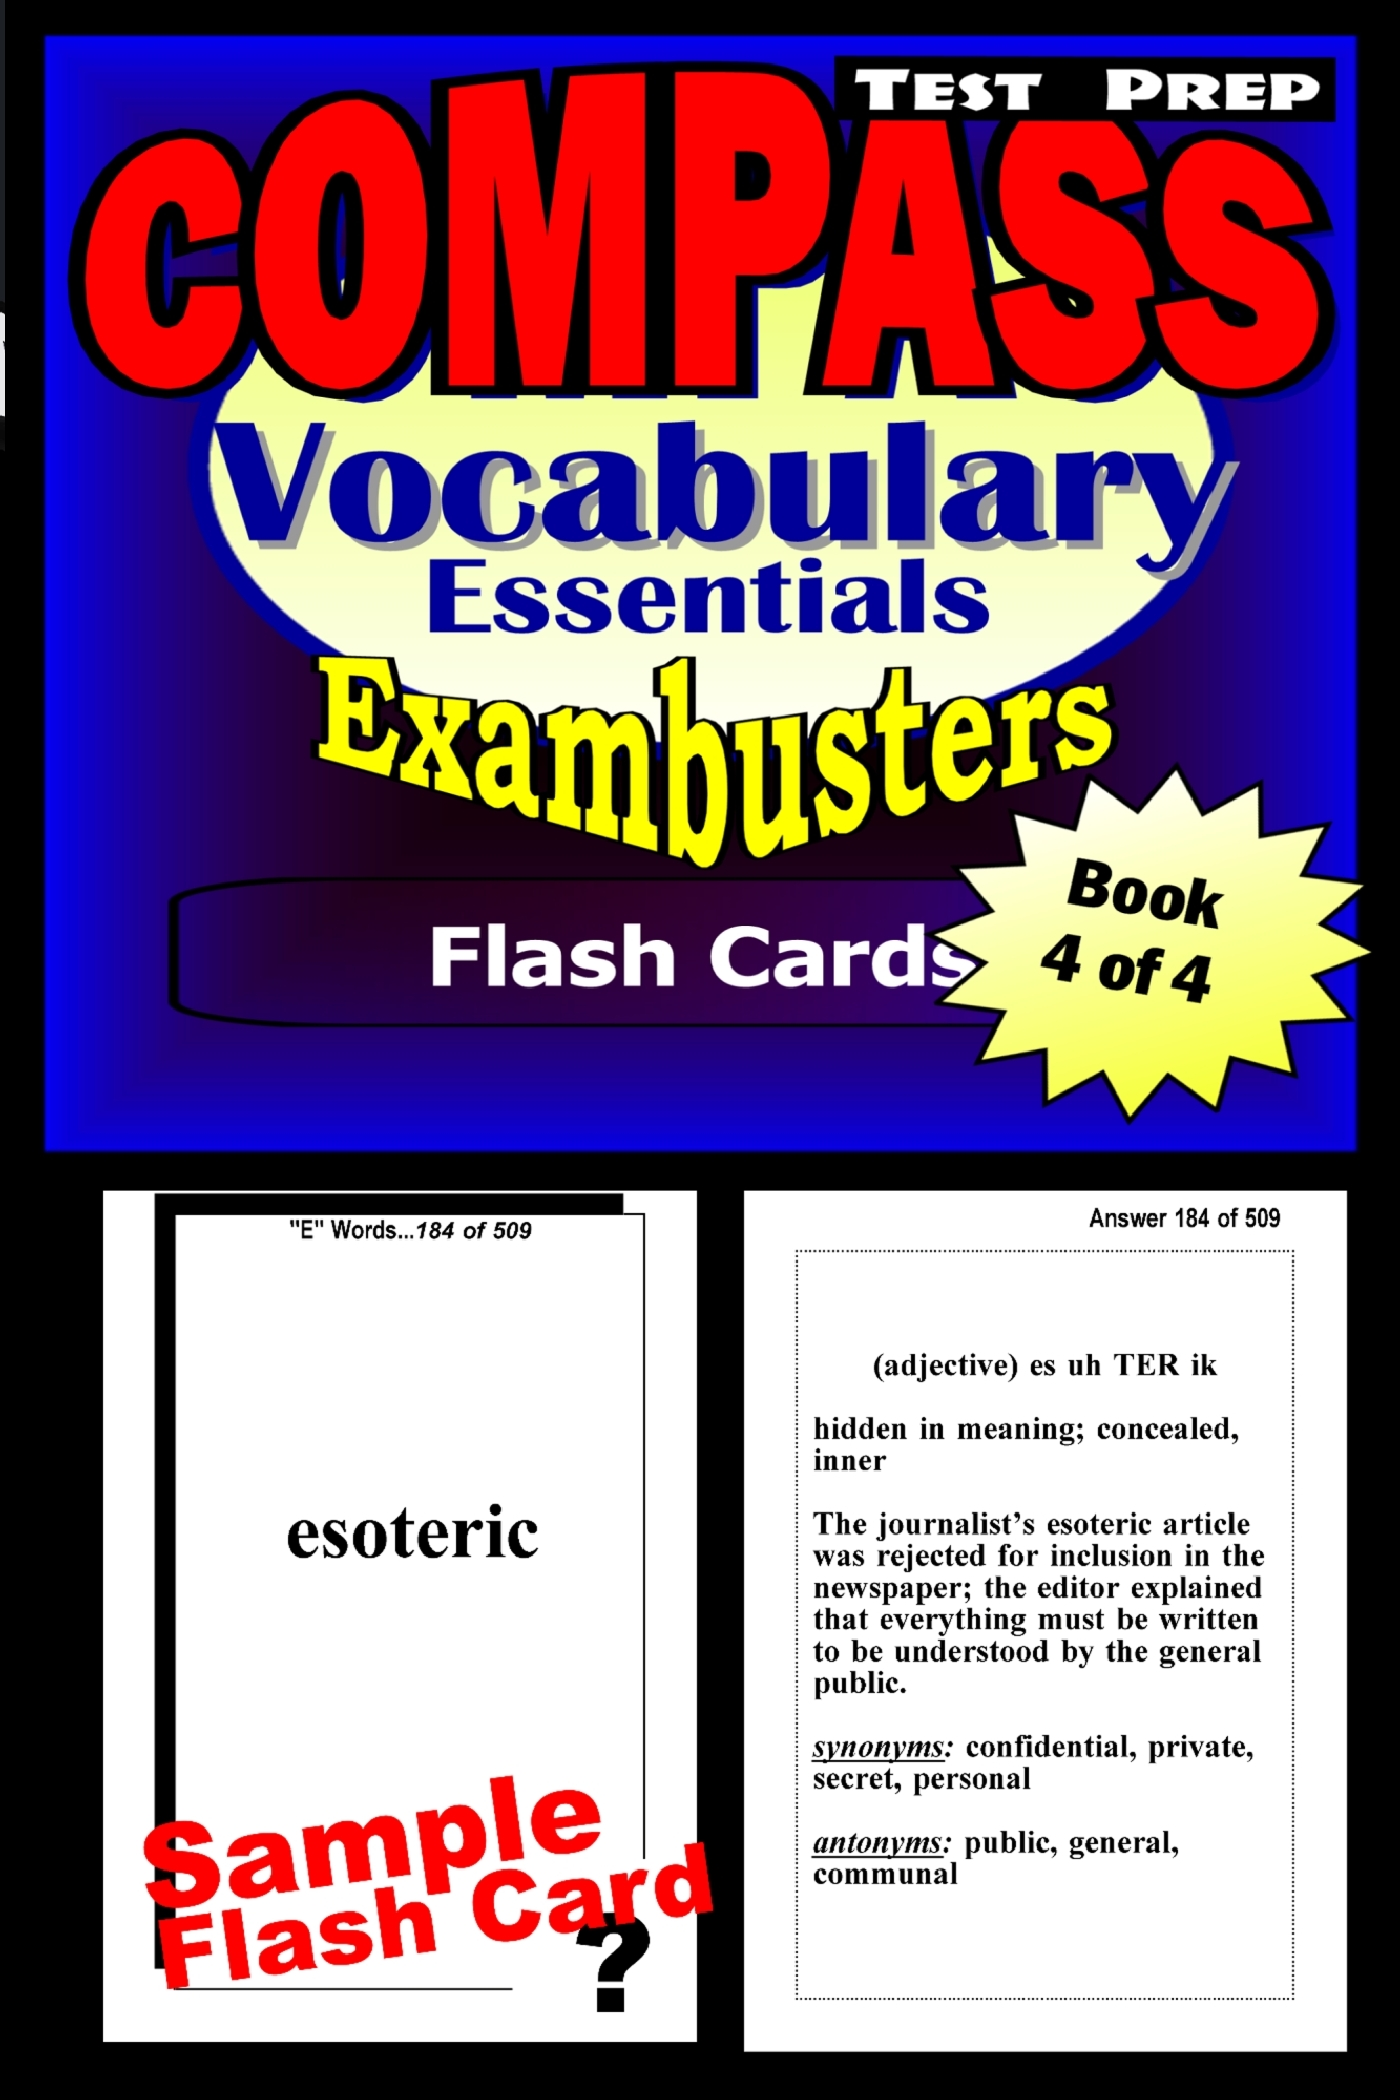 COMPASS Test Prep Essential Vocabulary--Exambusters Flash Cards--Workbook 4 of 4: Compass Exam Study Guide